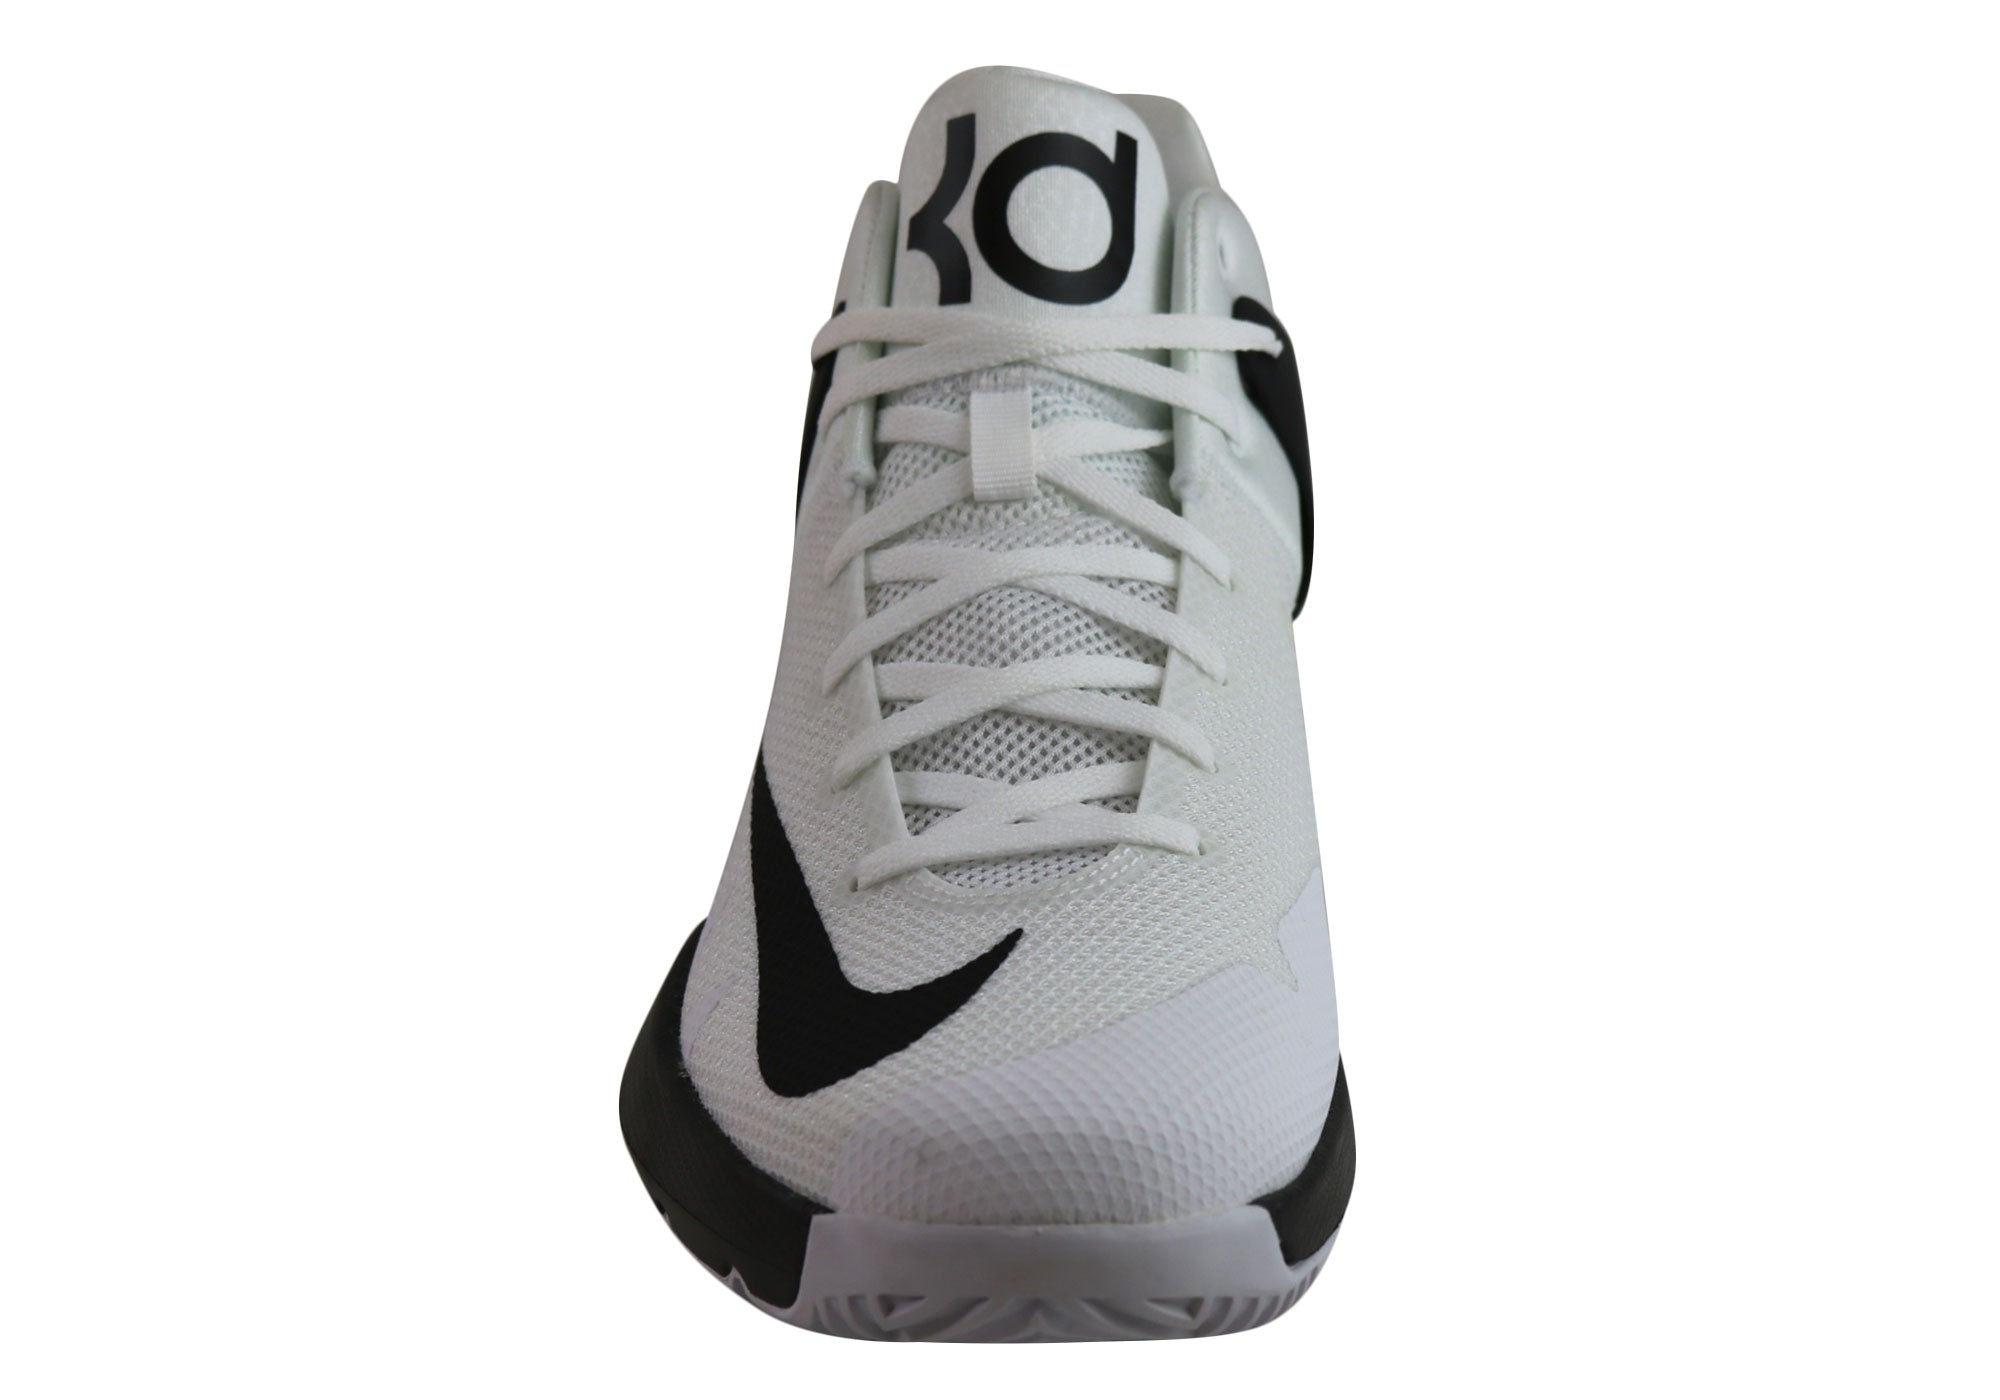 Complete Guide to Kevin Durant Nike KD Shoes